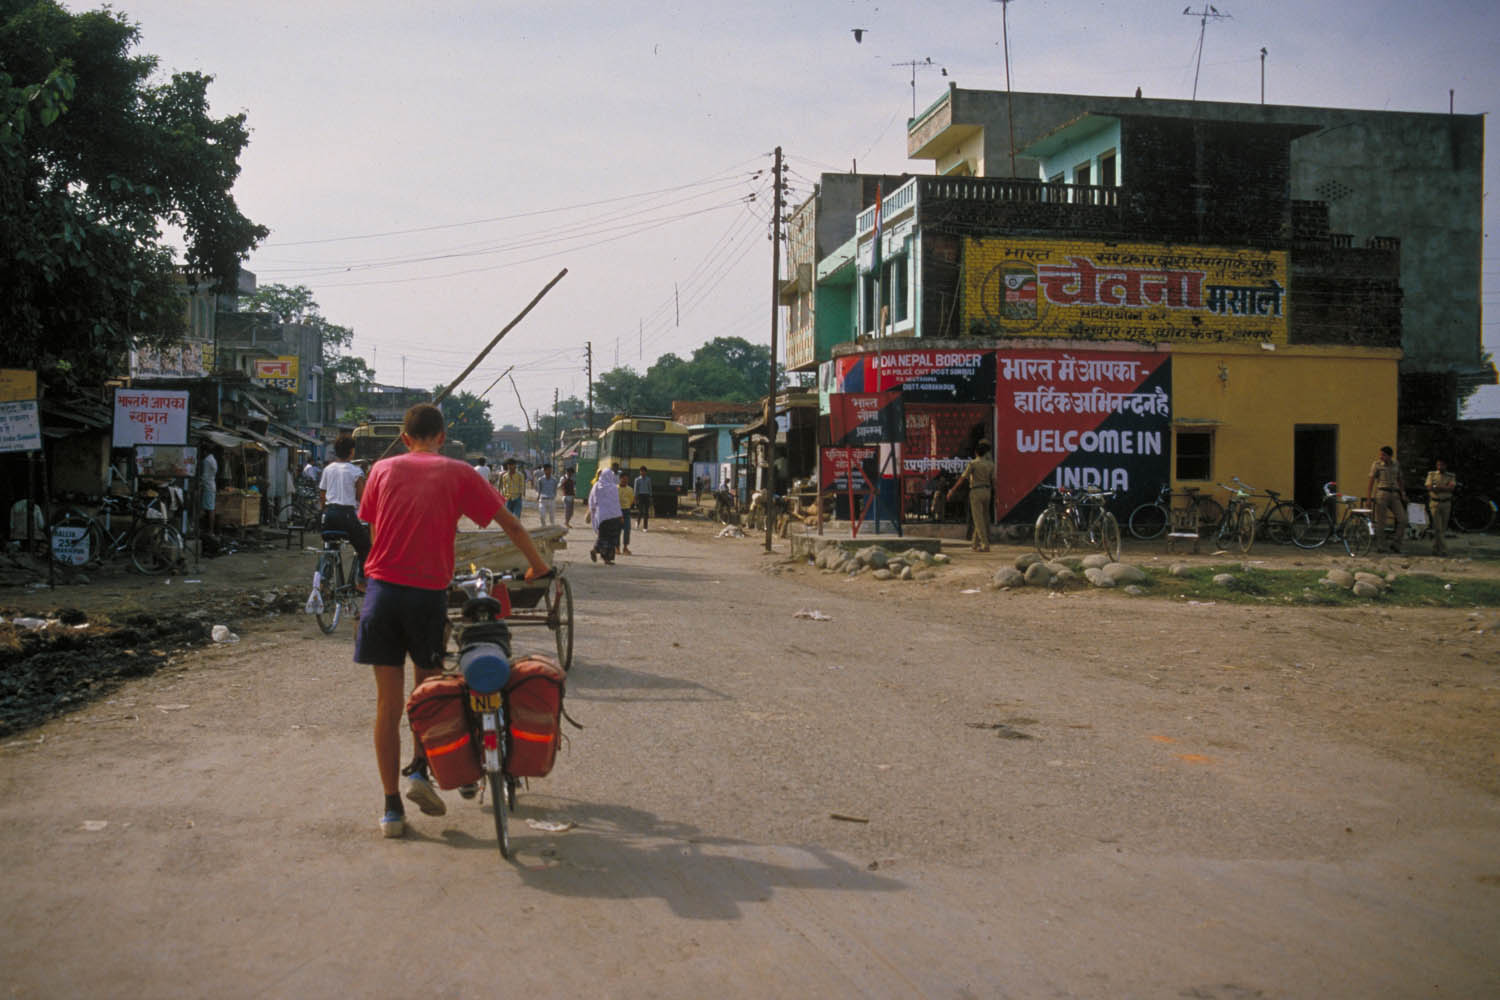 entering India from Nepal